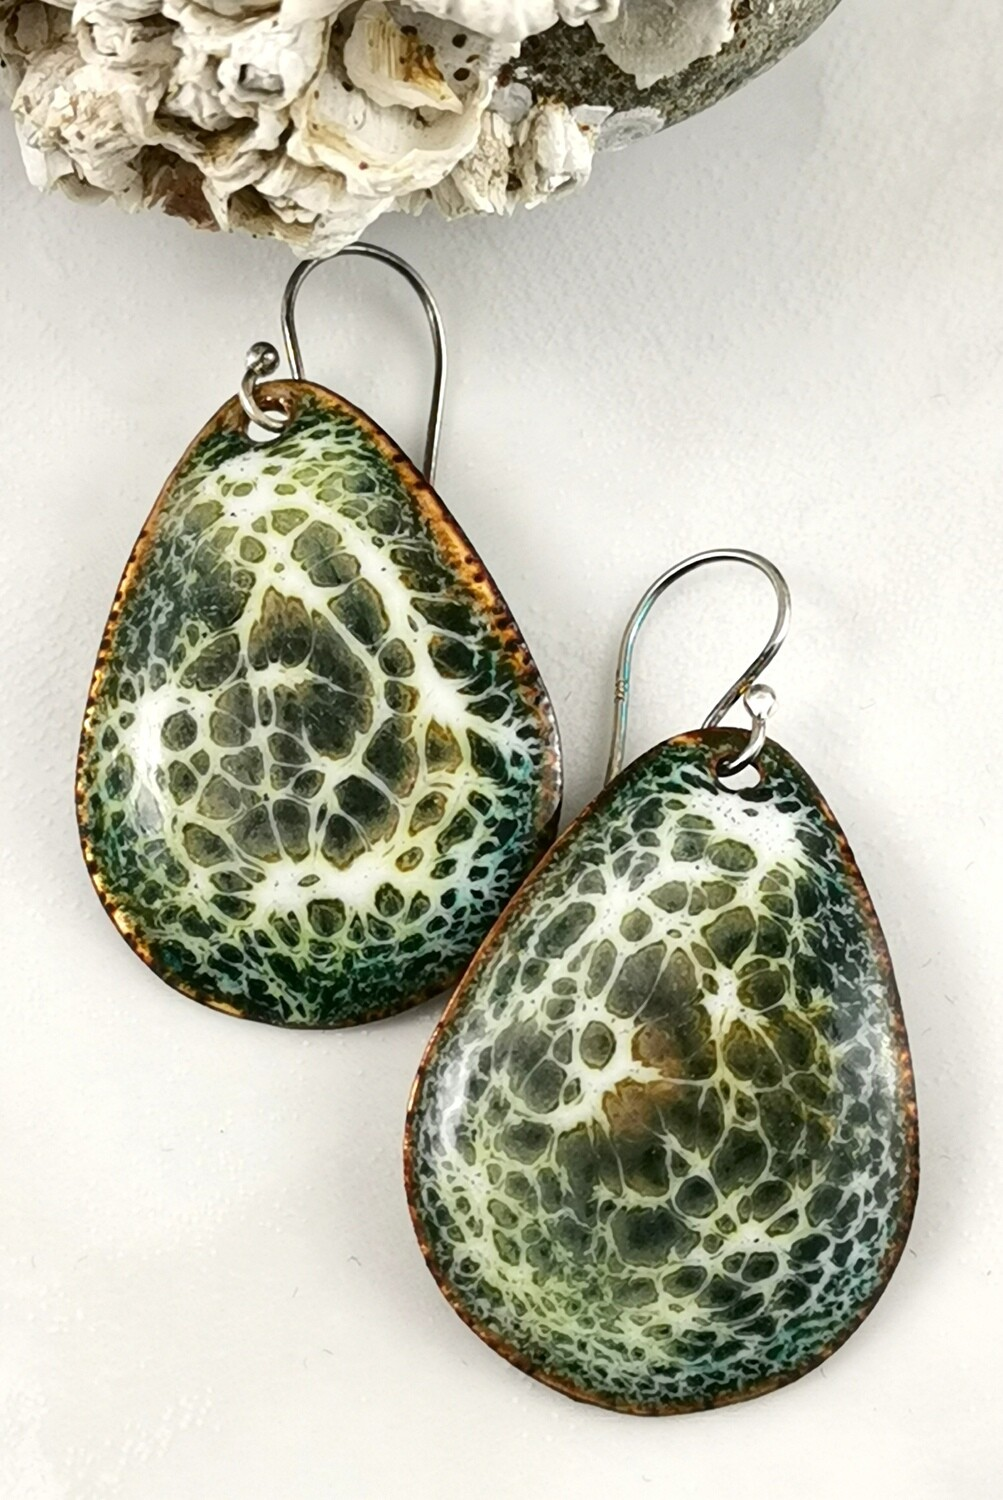 Torch Fired Enamel Earrings, Enameled Earrings, Green Tortuous Shell, with hues of green, golden brown and off white